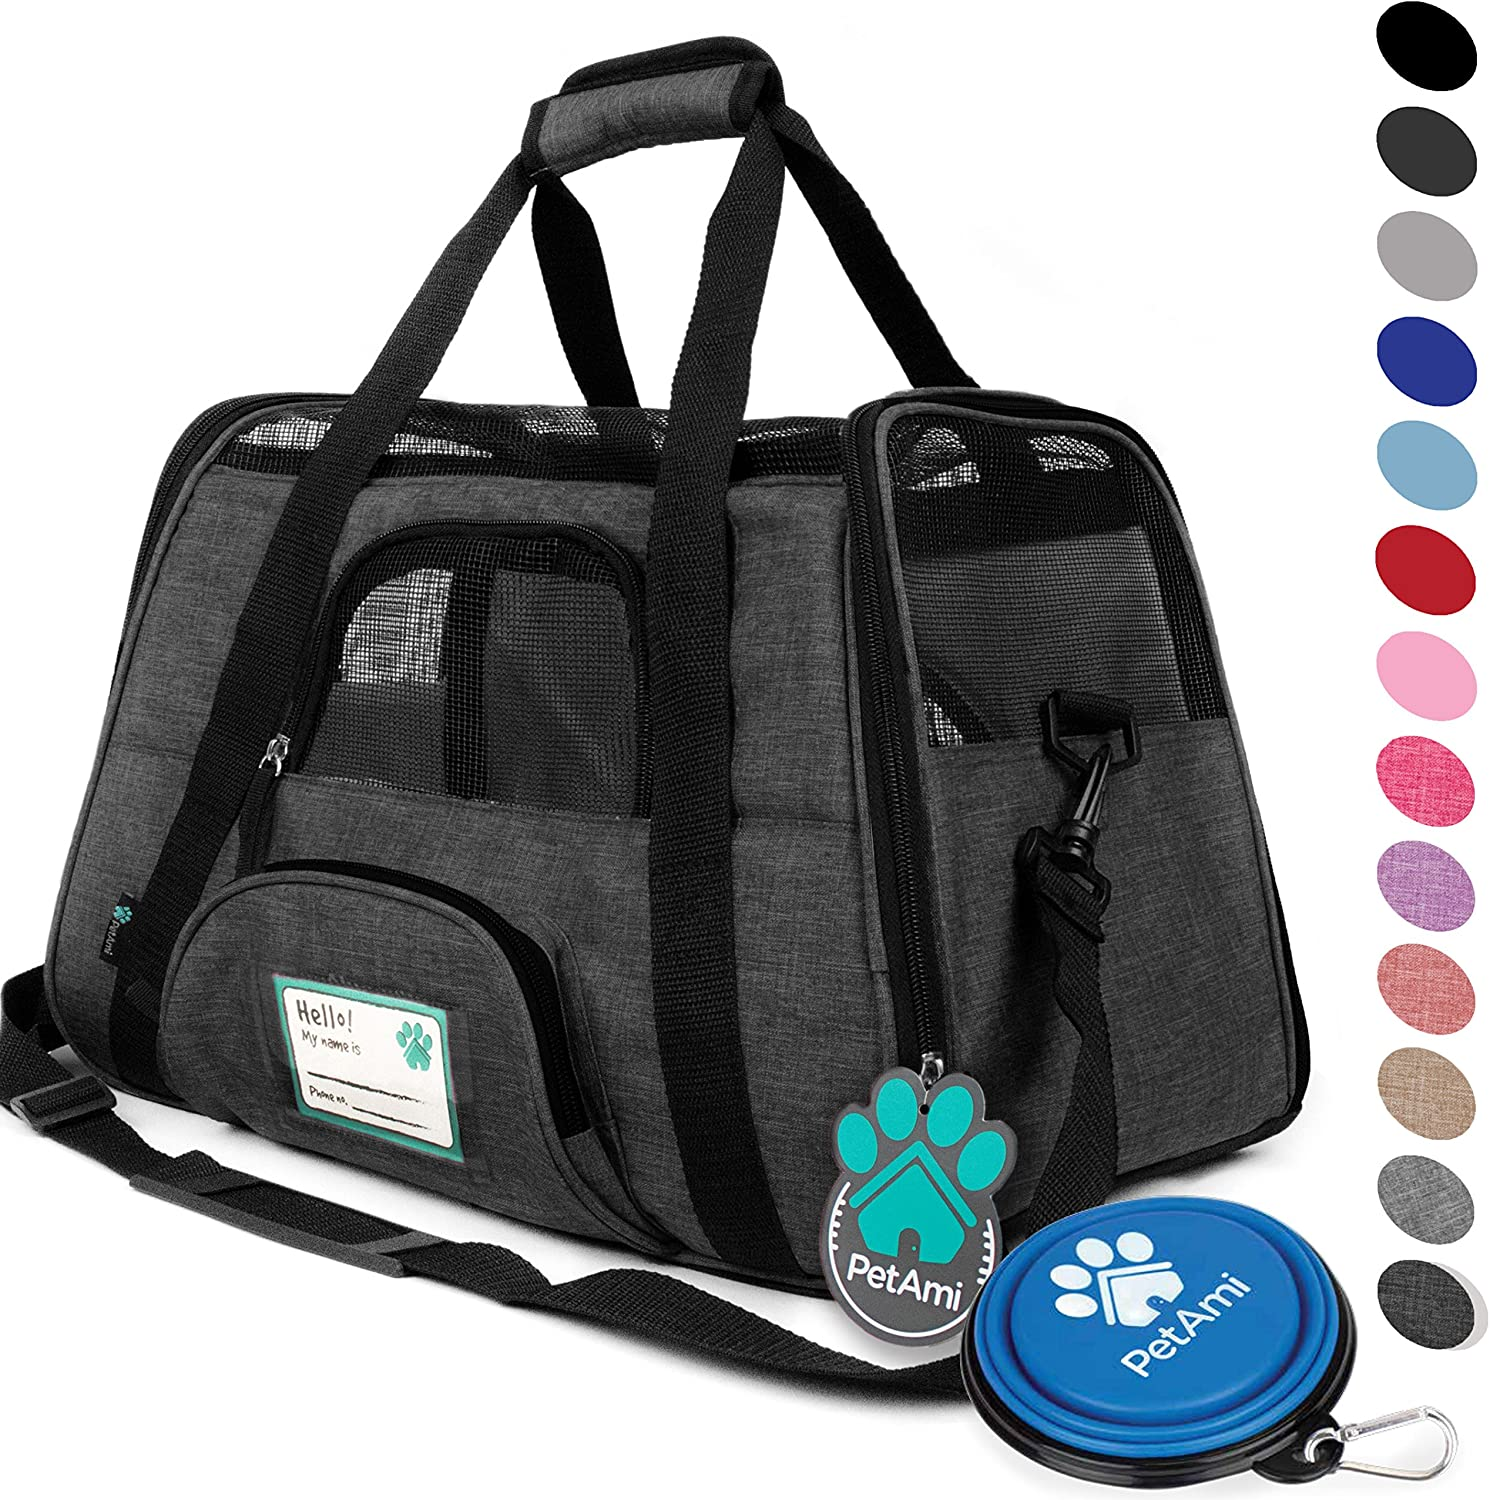 PetAmi Premium Airline Approved SoftSided Pet Travel Carrier   Ventilated, Comfortable Design with Safety Features   Ideal for Small to Medium Sized Cats, Dogs, and Pets (Large, Charcoal)